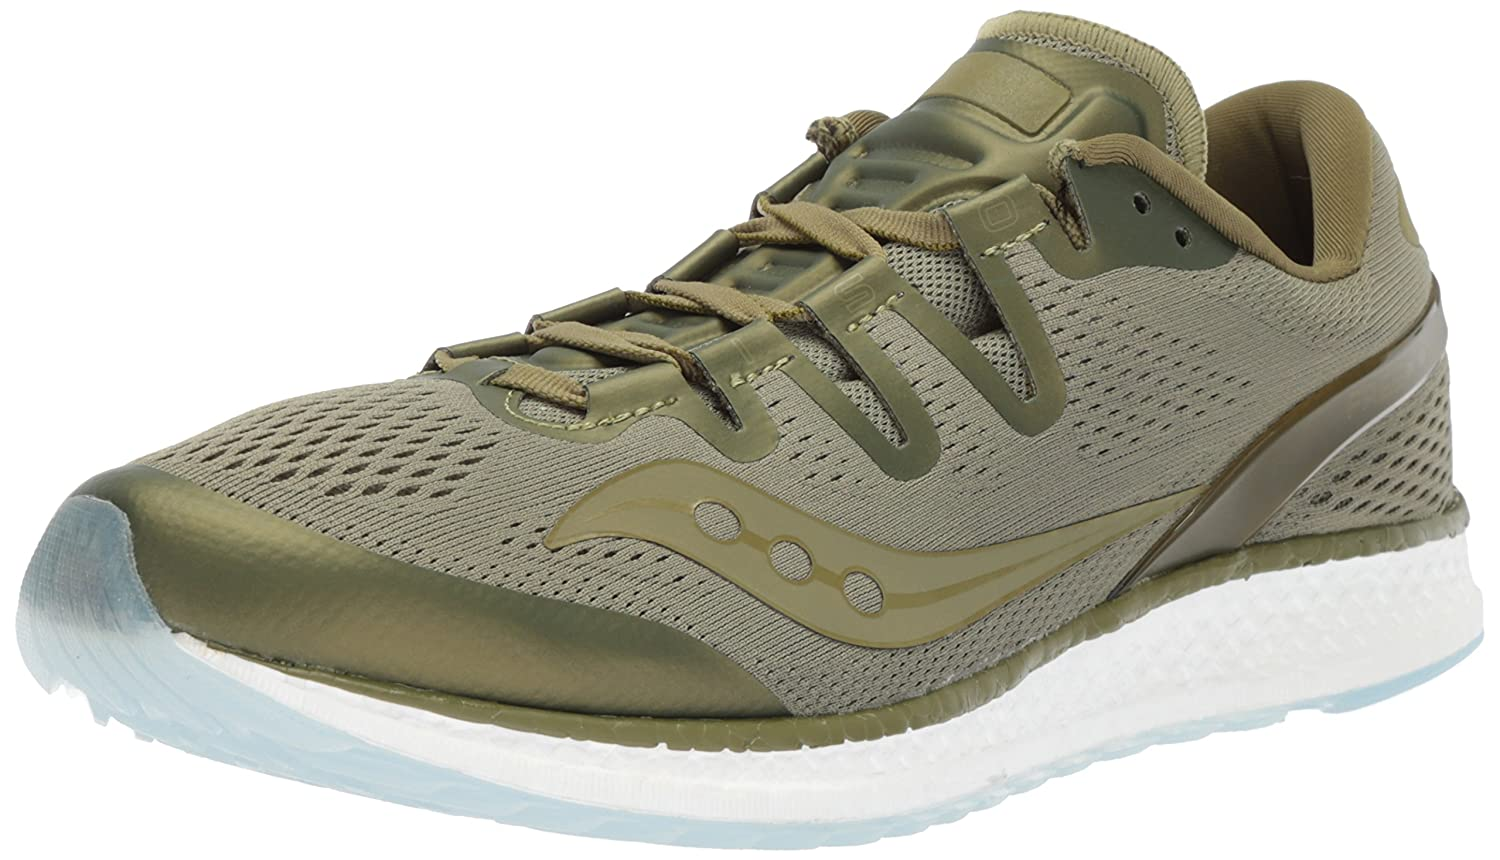 Saucony Freedom Iso Unisex Road-Running-Shoes B071WCPT16 4.5 M US|Olive